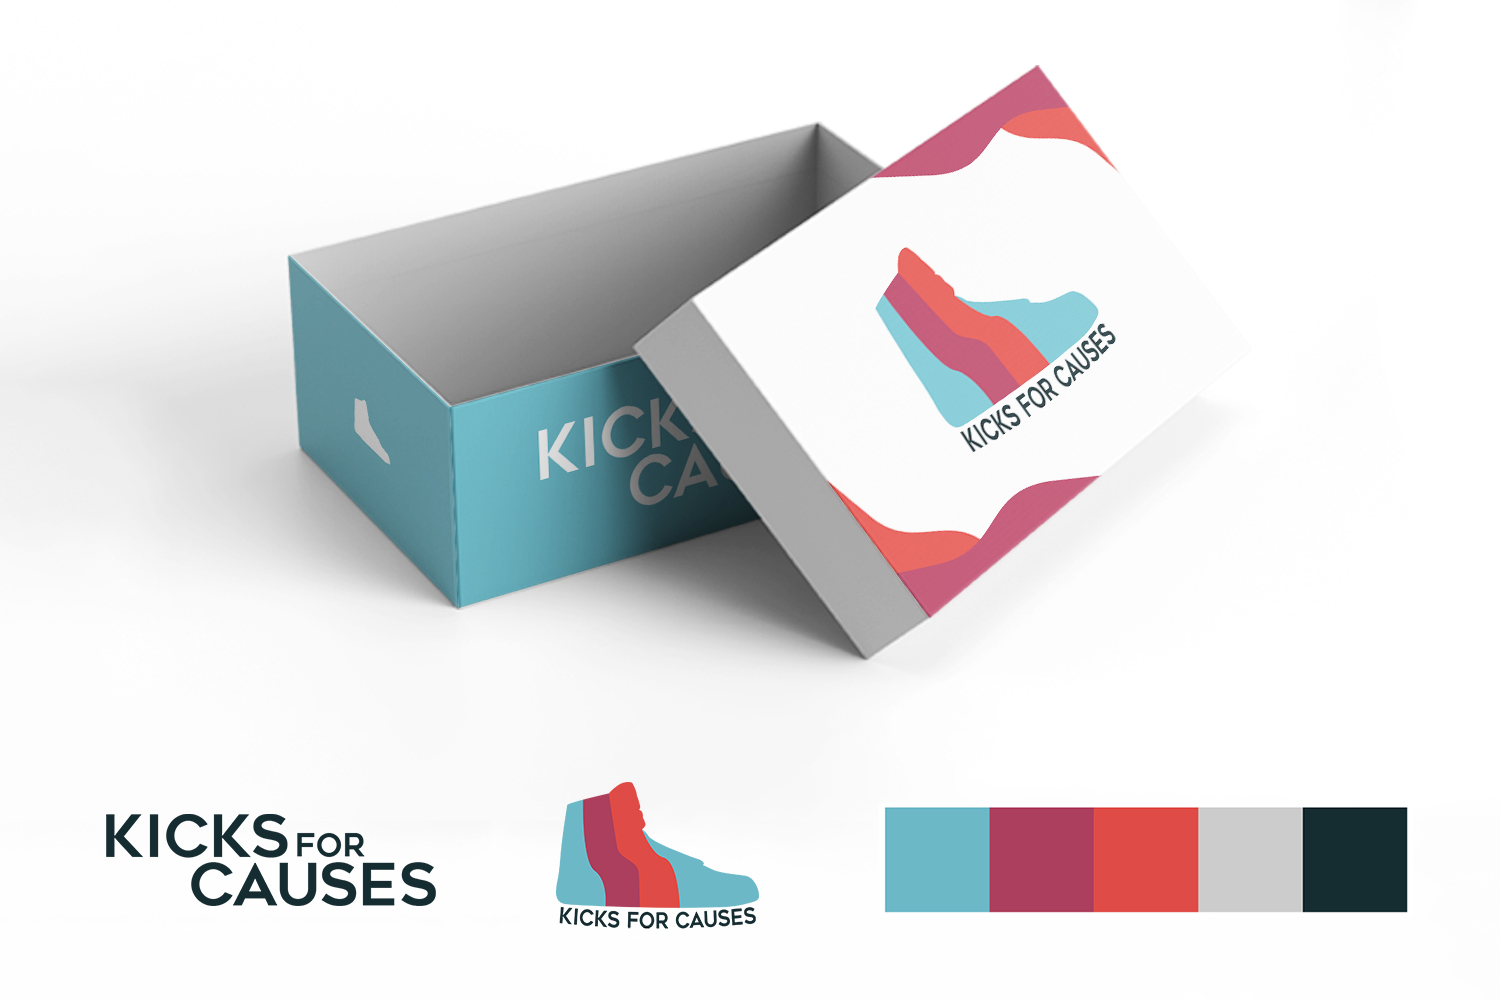 A mockup of the brand identity created for Kicks for Causes.